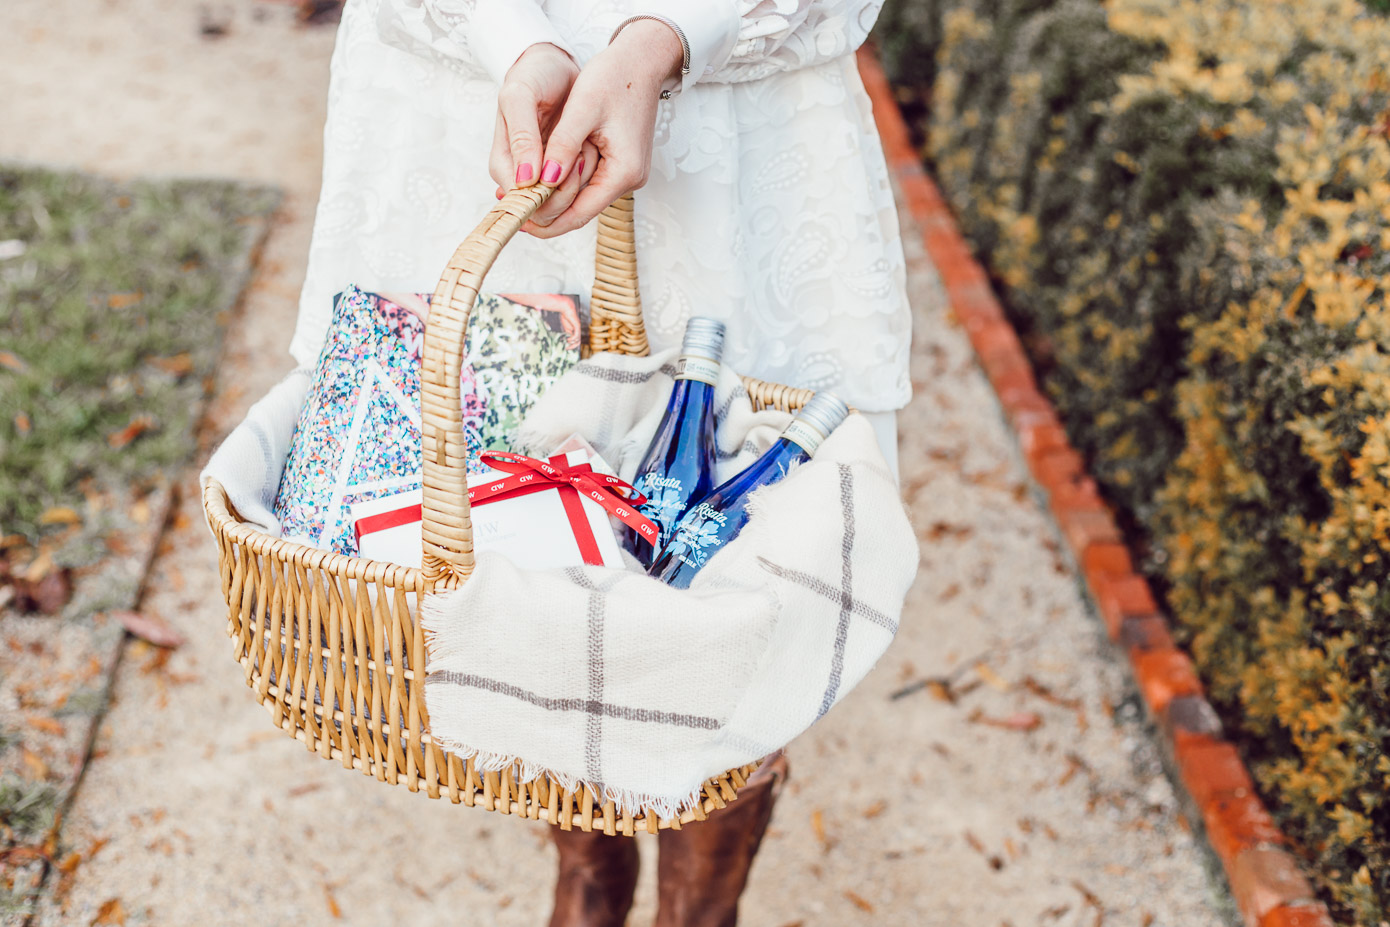 How To Celebrate Special Occasions the Right Way With The BEST Small Personal Wine Bottles- Louella Reese Life & Style Blog